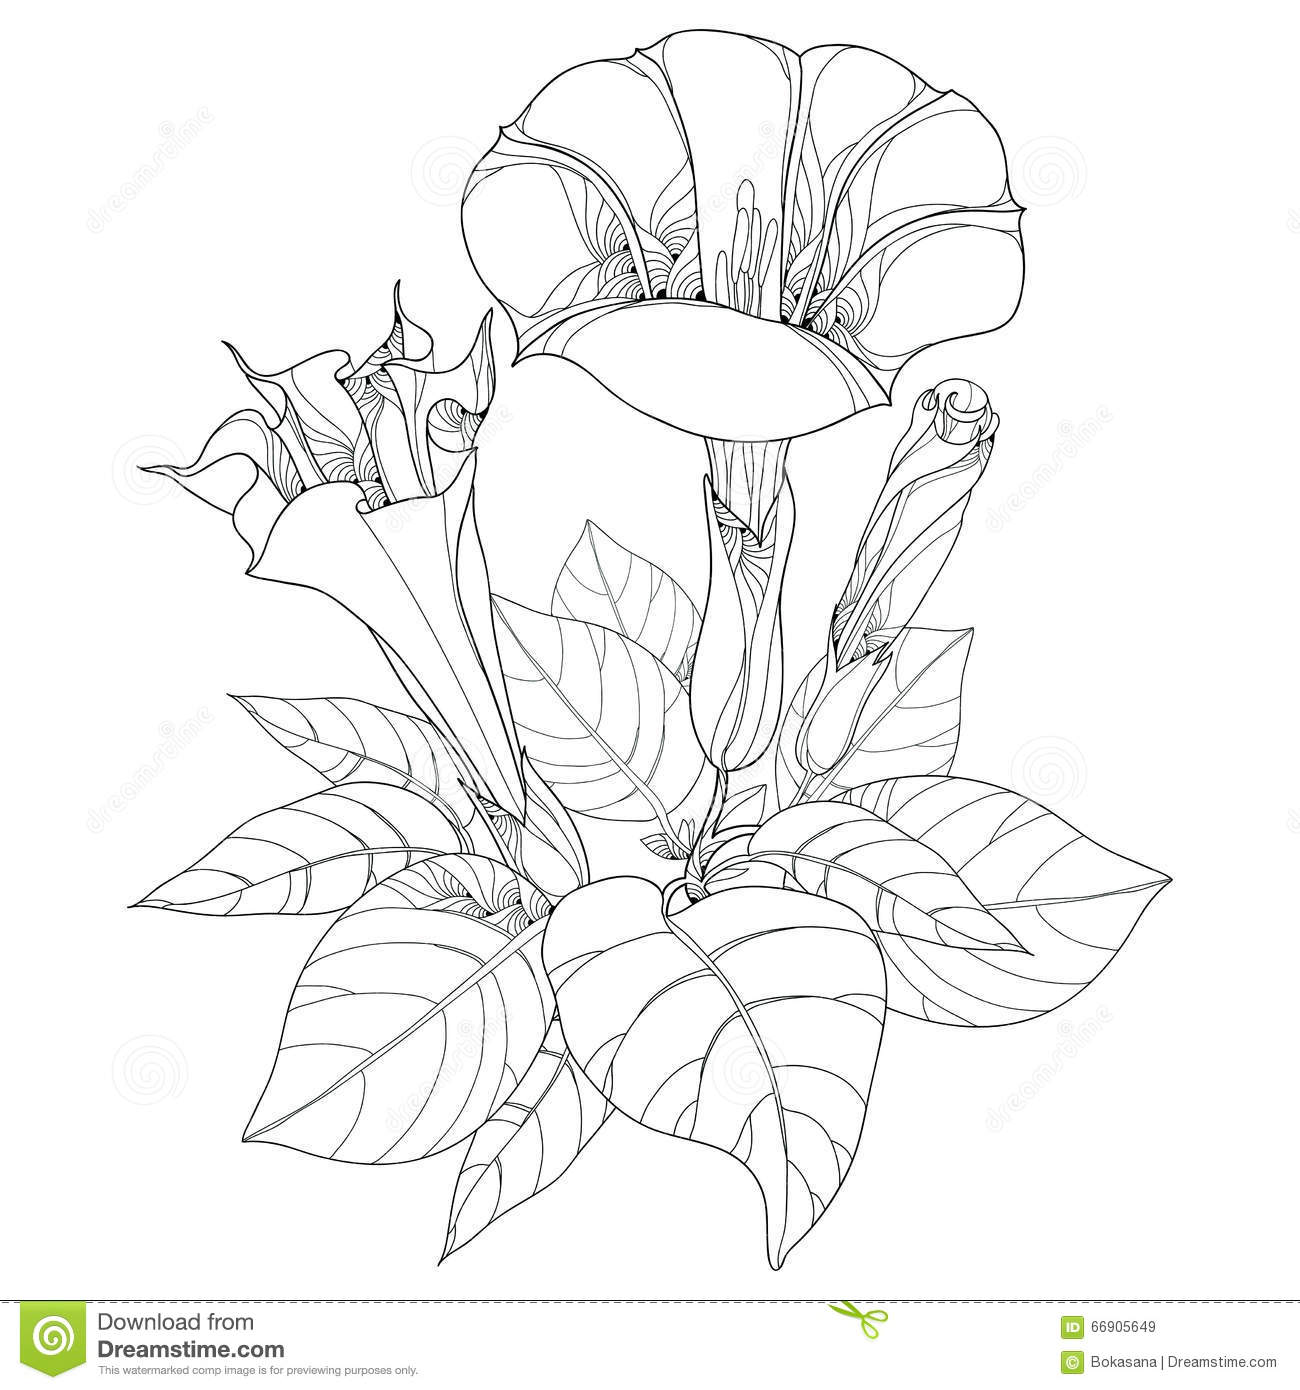 Stem With Datura Stramonium Or Thorn Apple Poisonous